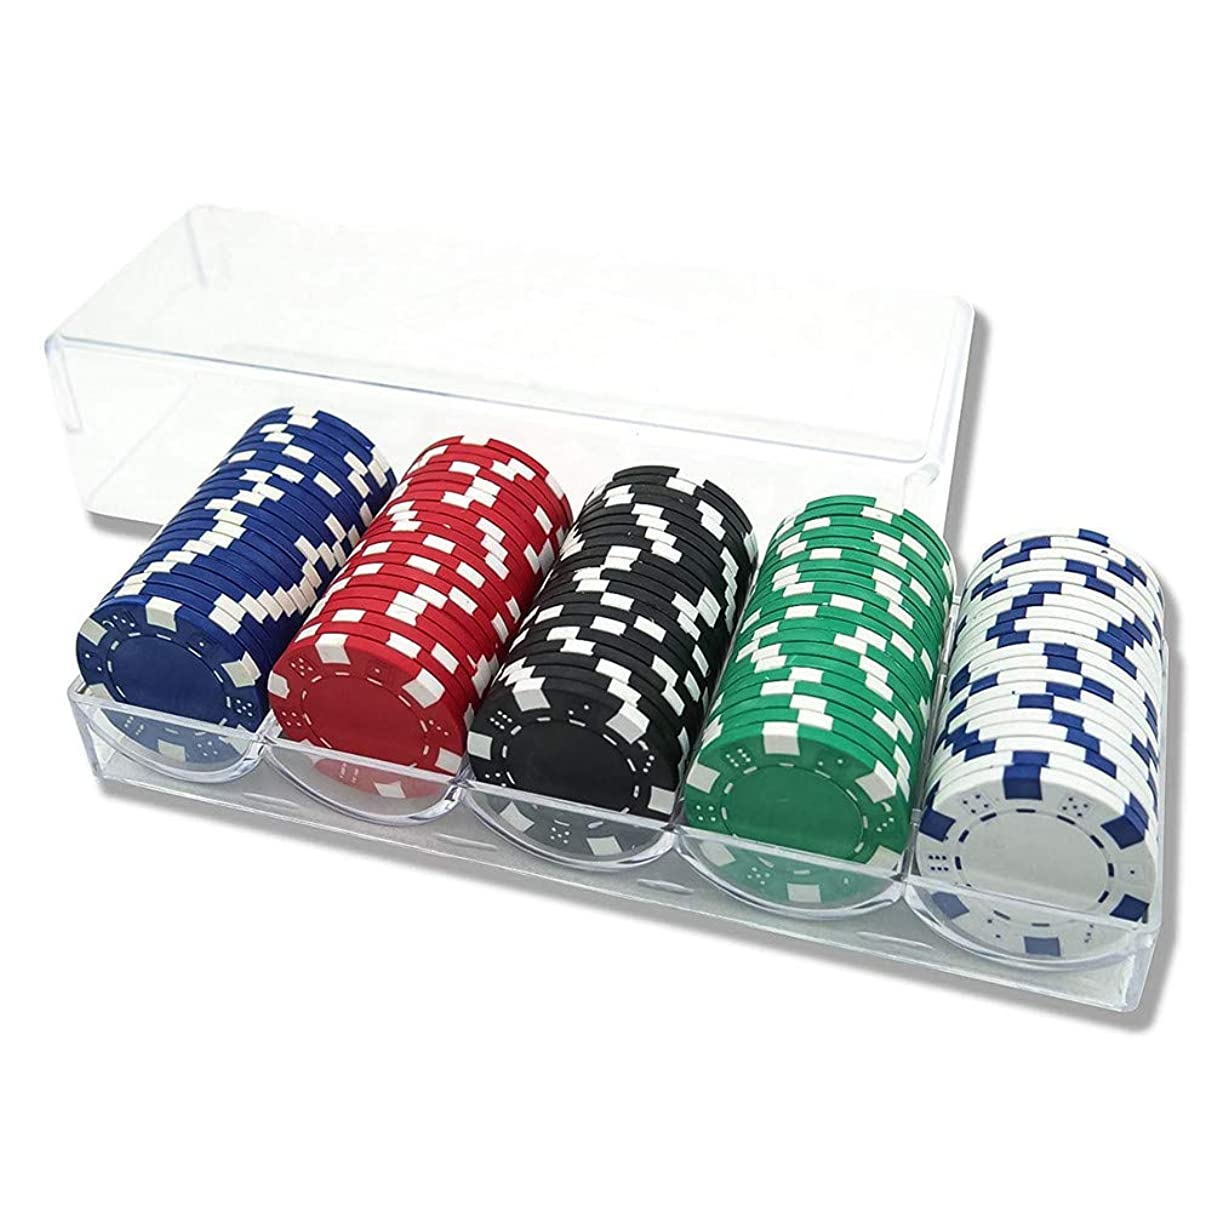 INHE 100pcs Poker Chips Dice 5 Colors, Include Clear Acrylic Poker Chip Rack